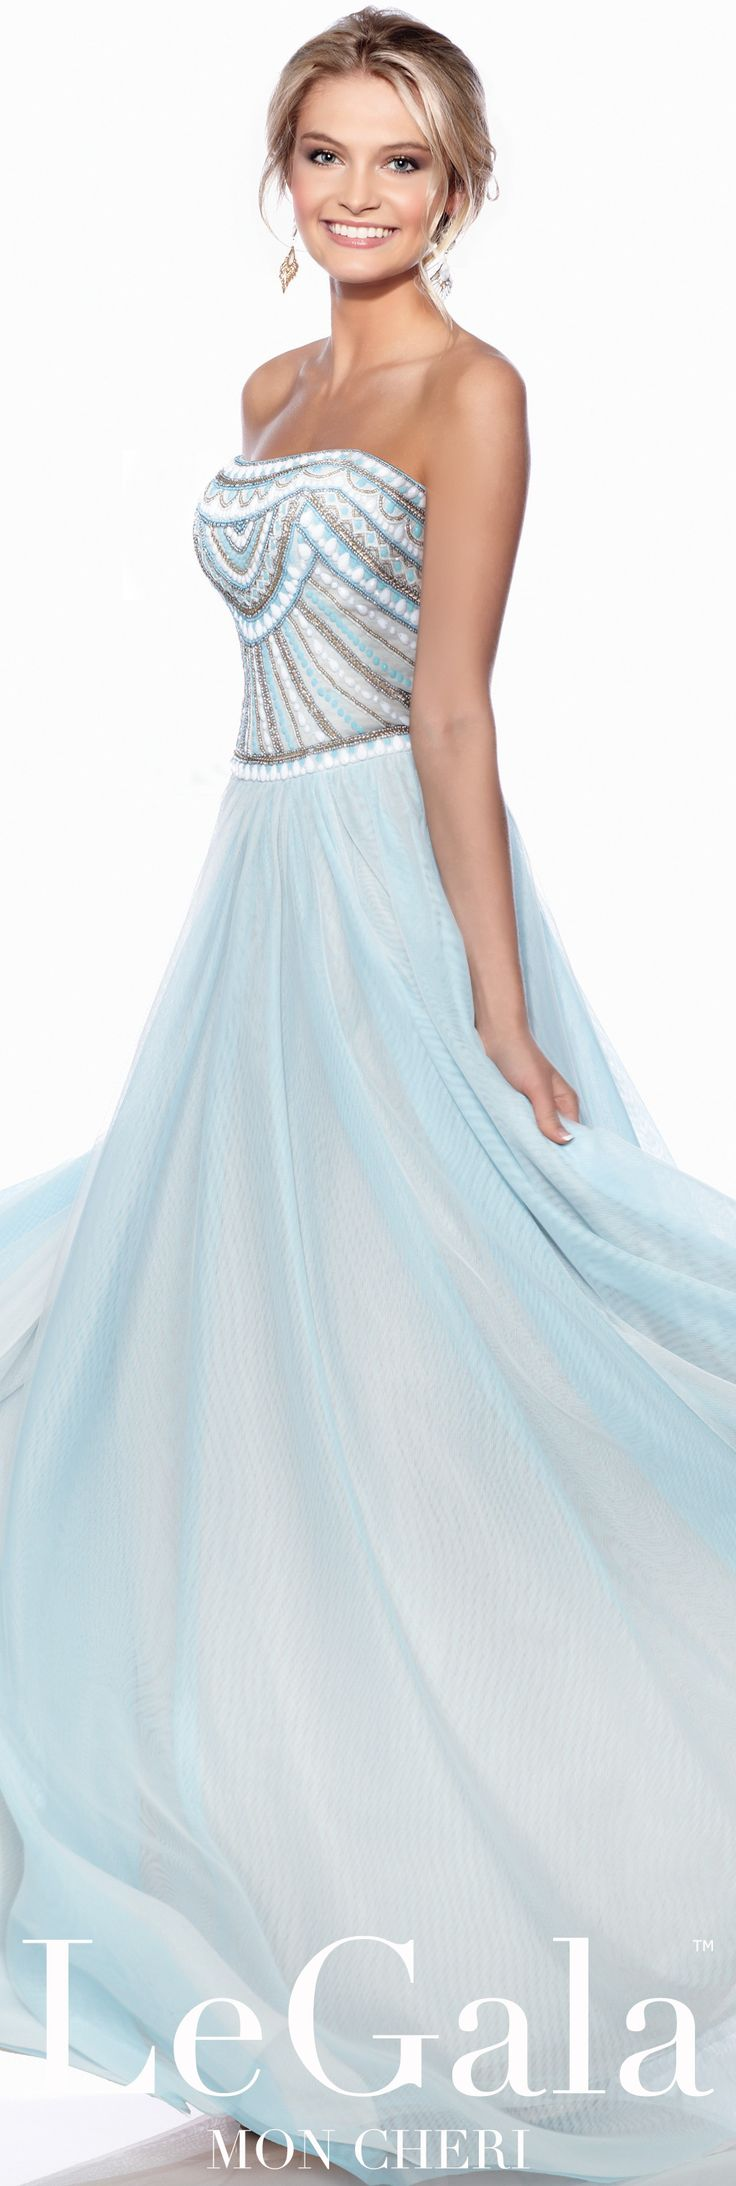 325 best Formals images on Pinterest | Evening gowns, Party wear ...